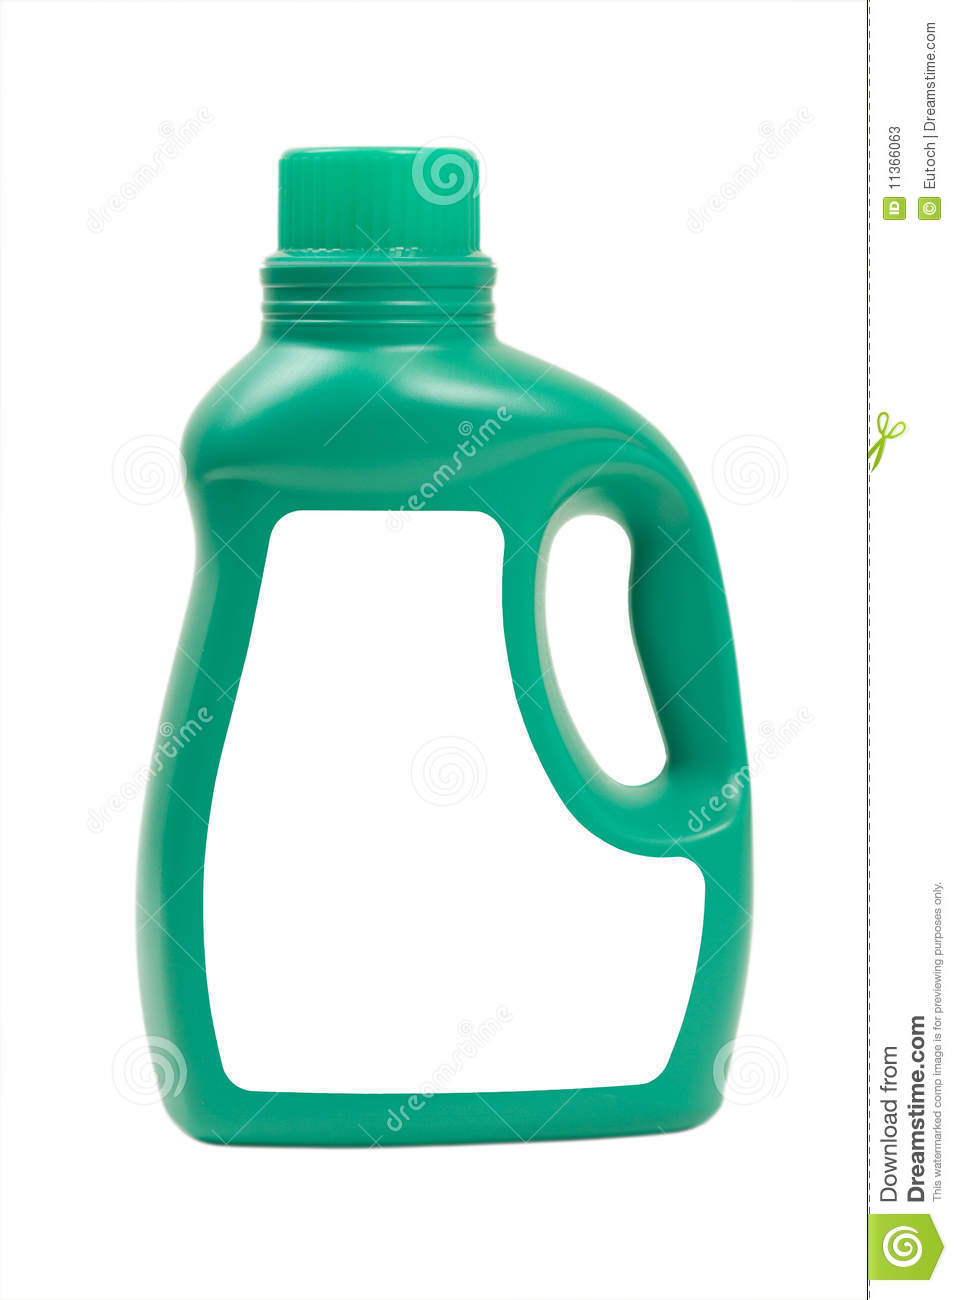 Laundry Detergent Clipart laundry detergent in green bottle stock photos - image: 11366063